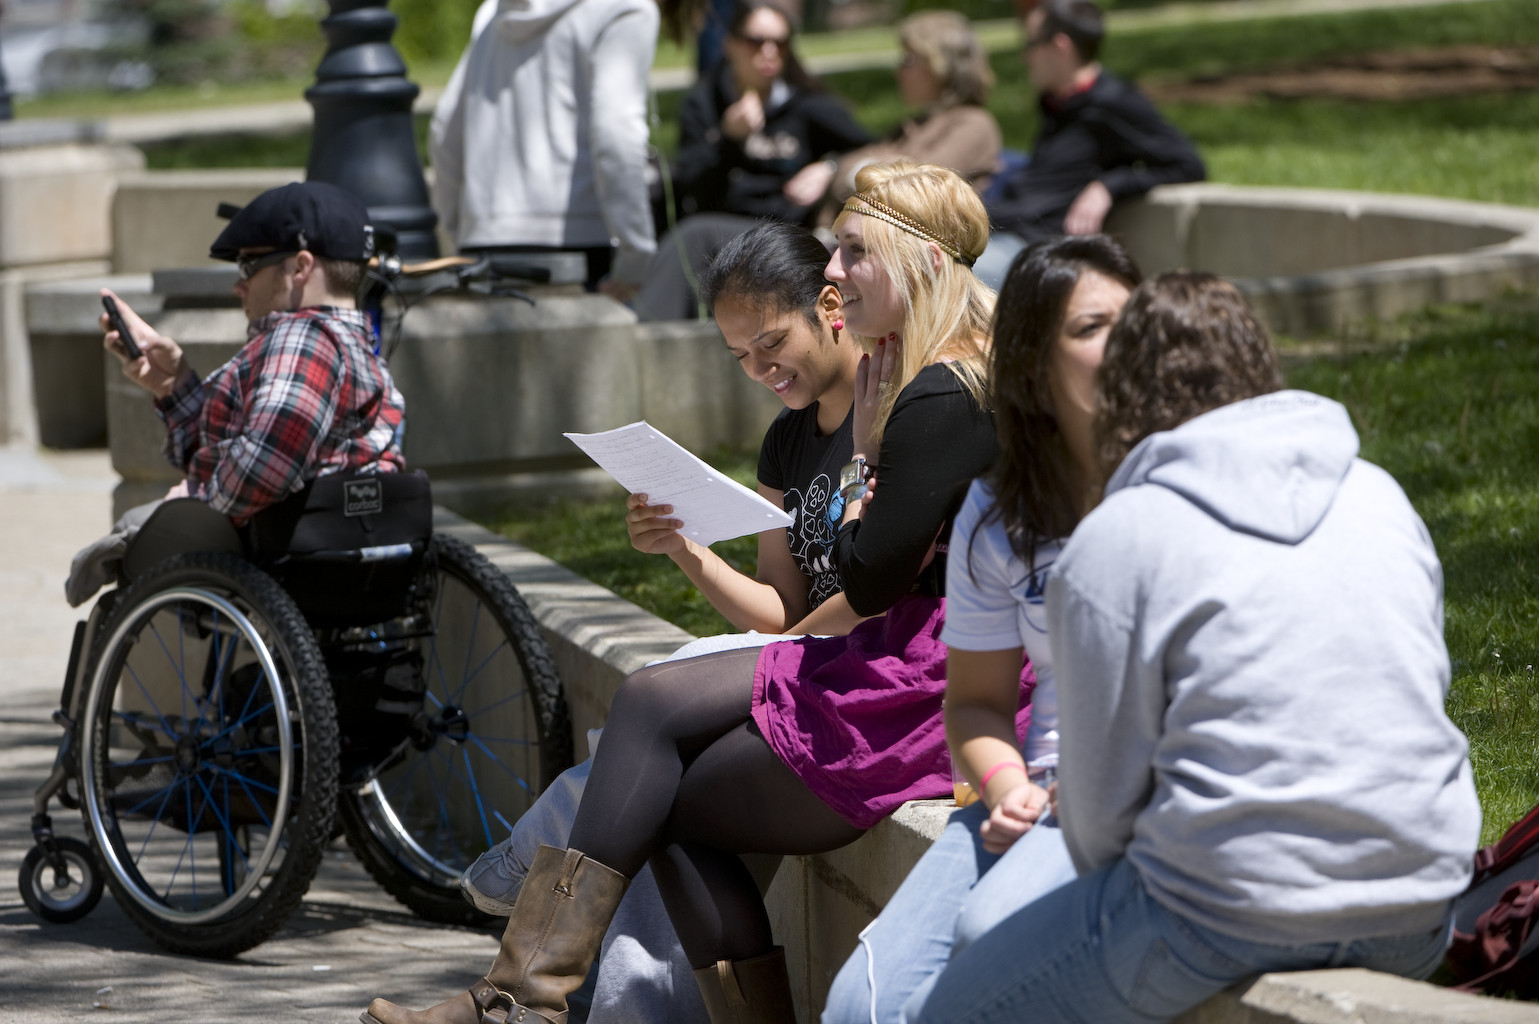 UNH students enjoy a sunny day. A student using a wheelchair is checking his phone.